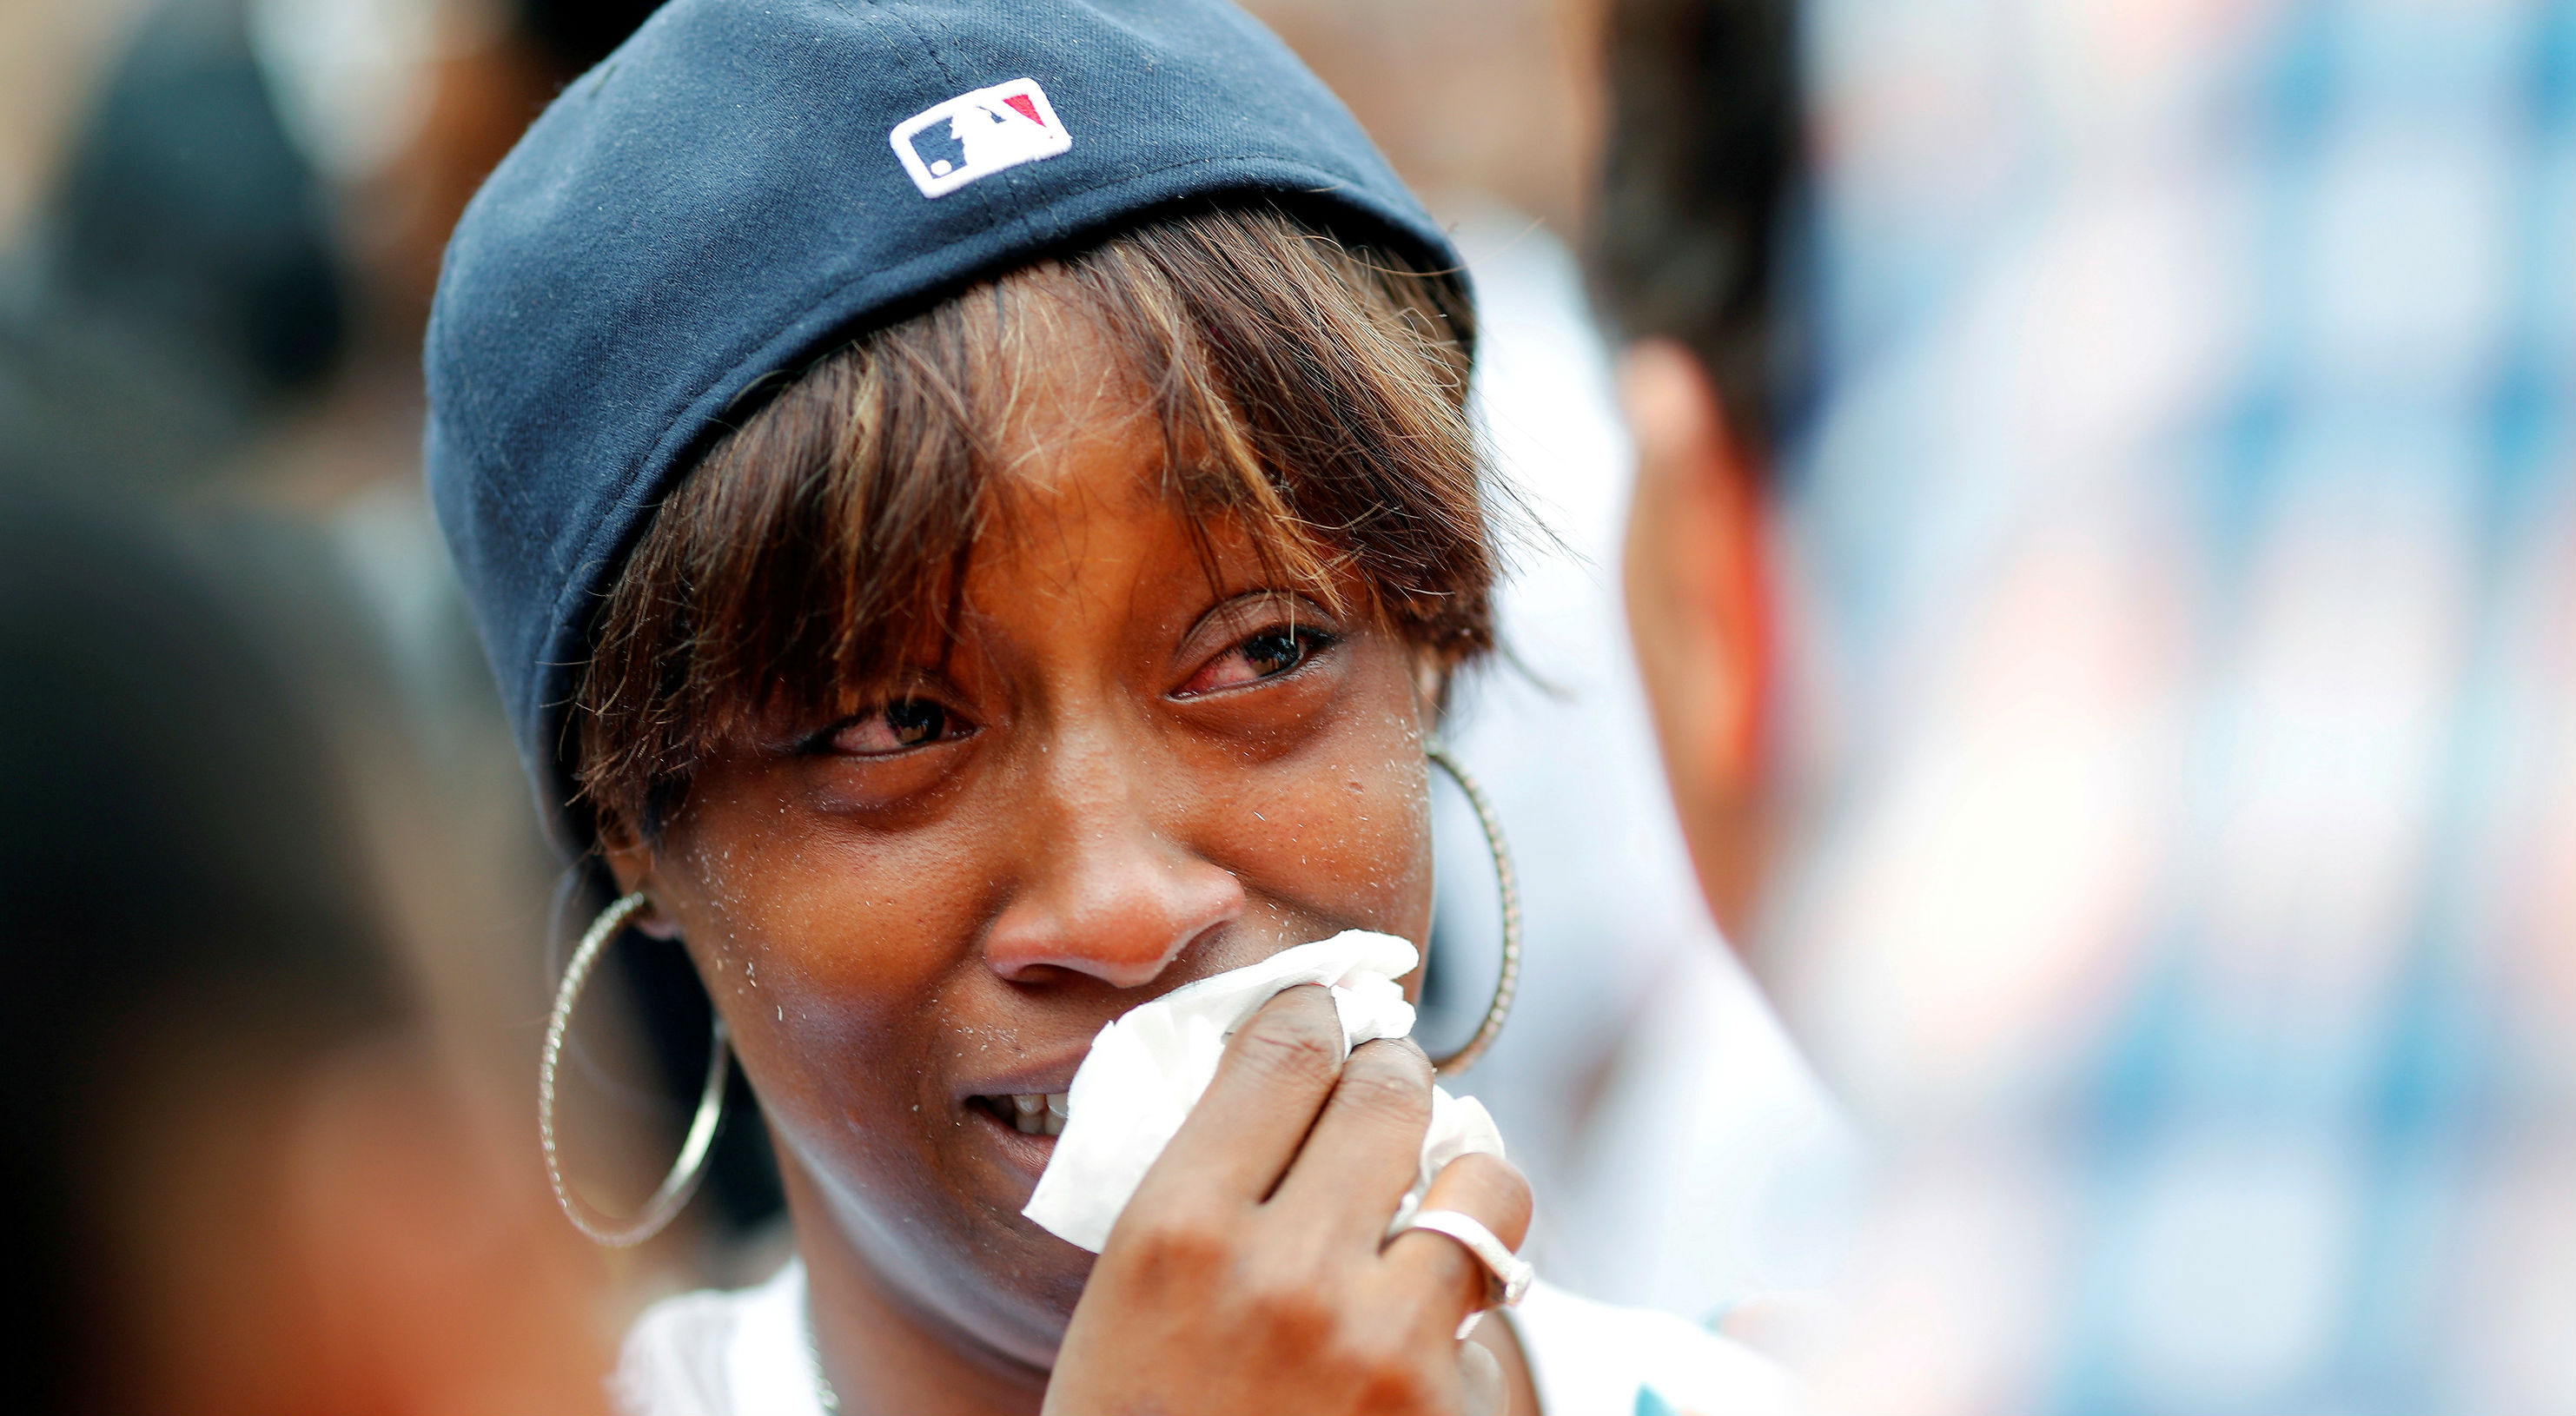 Diamond Reynolds, girlfriend of Philando Castile, weeps as people gather to protest the fatal shooting of Castile by Minneapolis area police during a traffic stop on Wednesday, in St. Paul, Minnesota, on July 7, 2016.